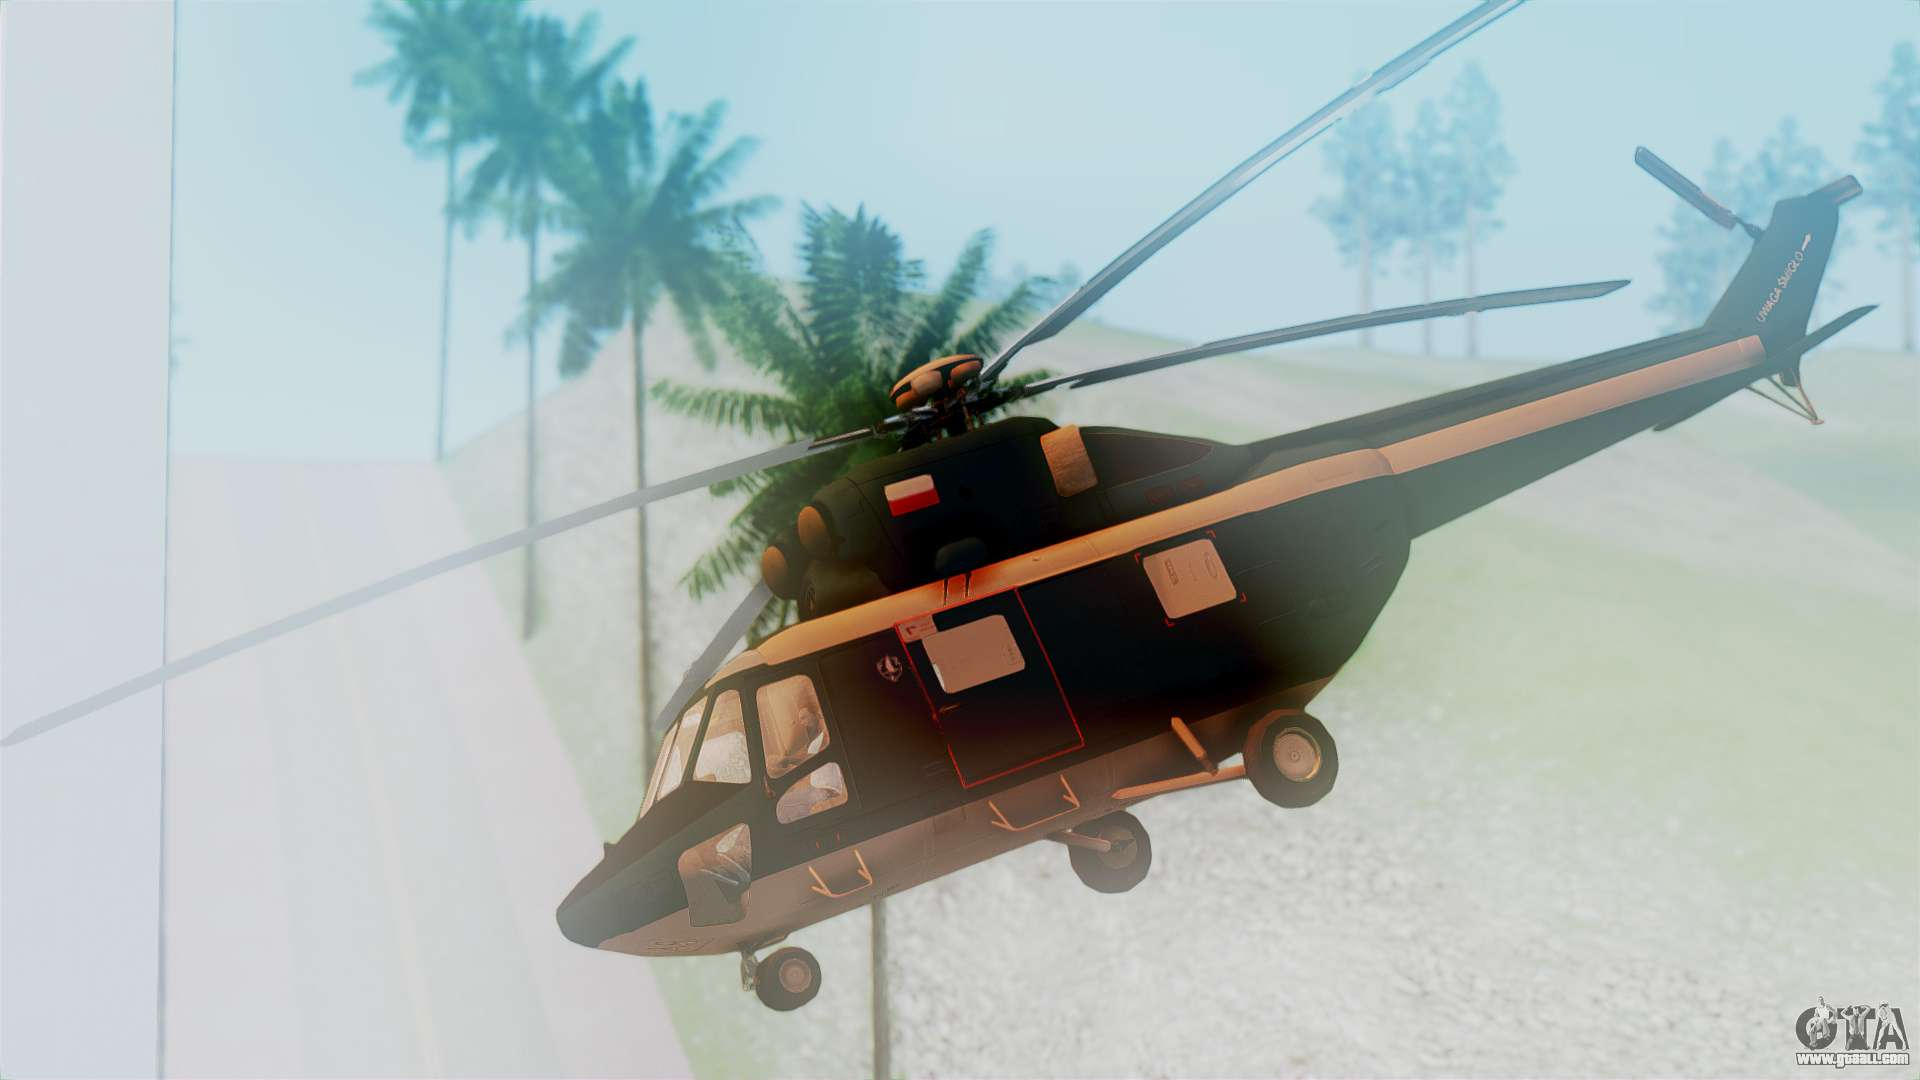 maverick helicopters jobs with 64559 Pzl W 3a Sokol on 3323157023 likewise Electric Daisy Carnival 2017 Lineup Revealed besides Helicopter Careers Guidance Aviation Graduates furthermore N G aw zj123 besides 3546193675.